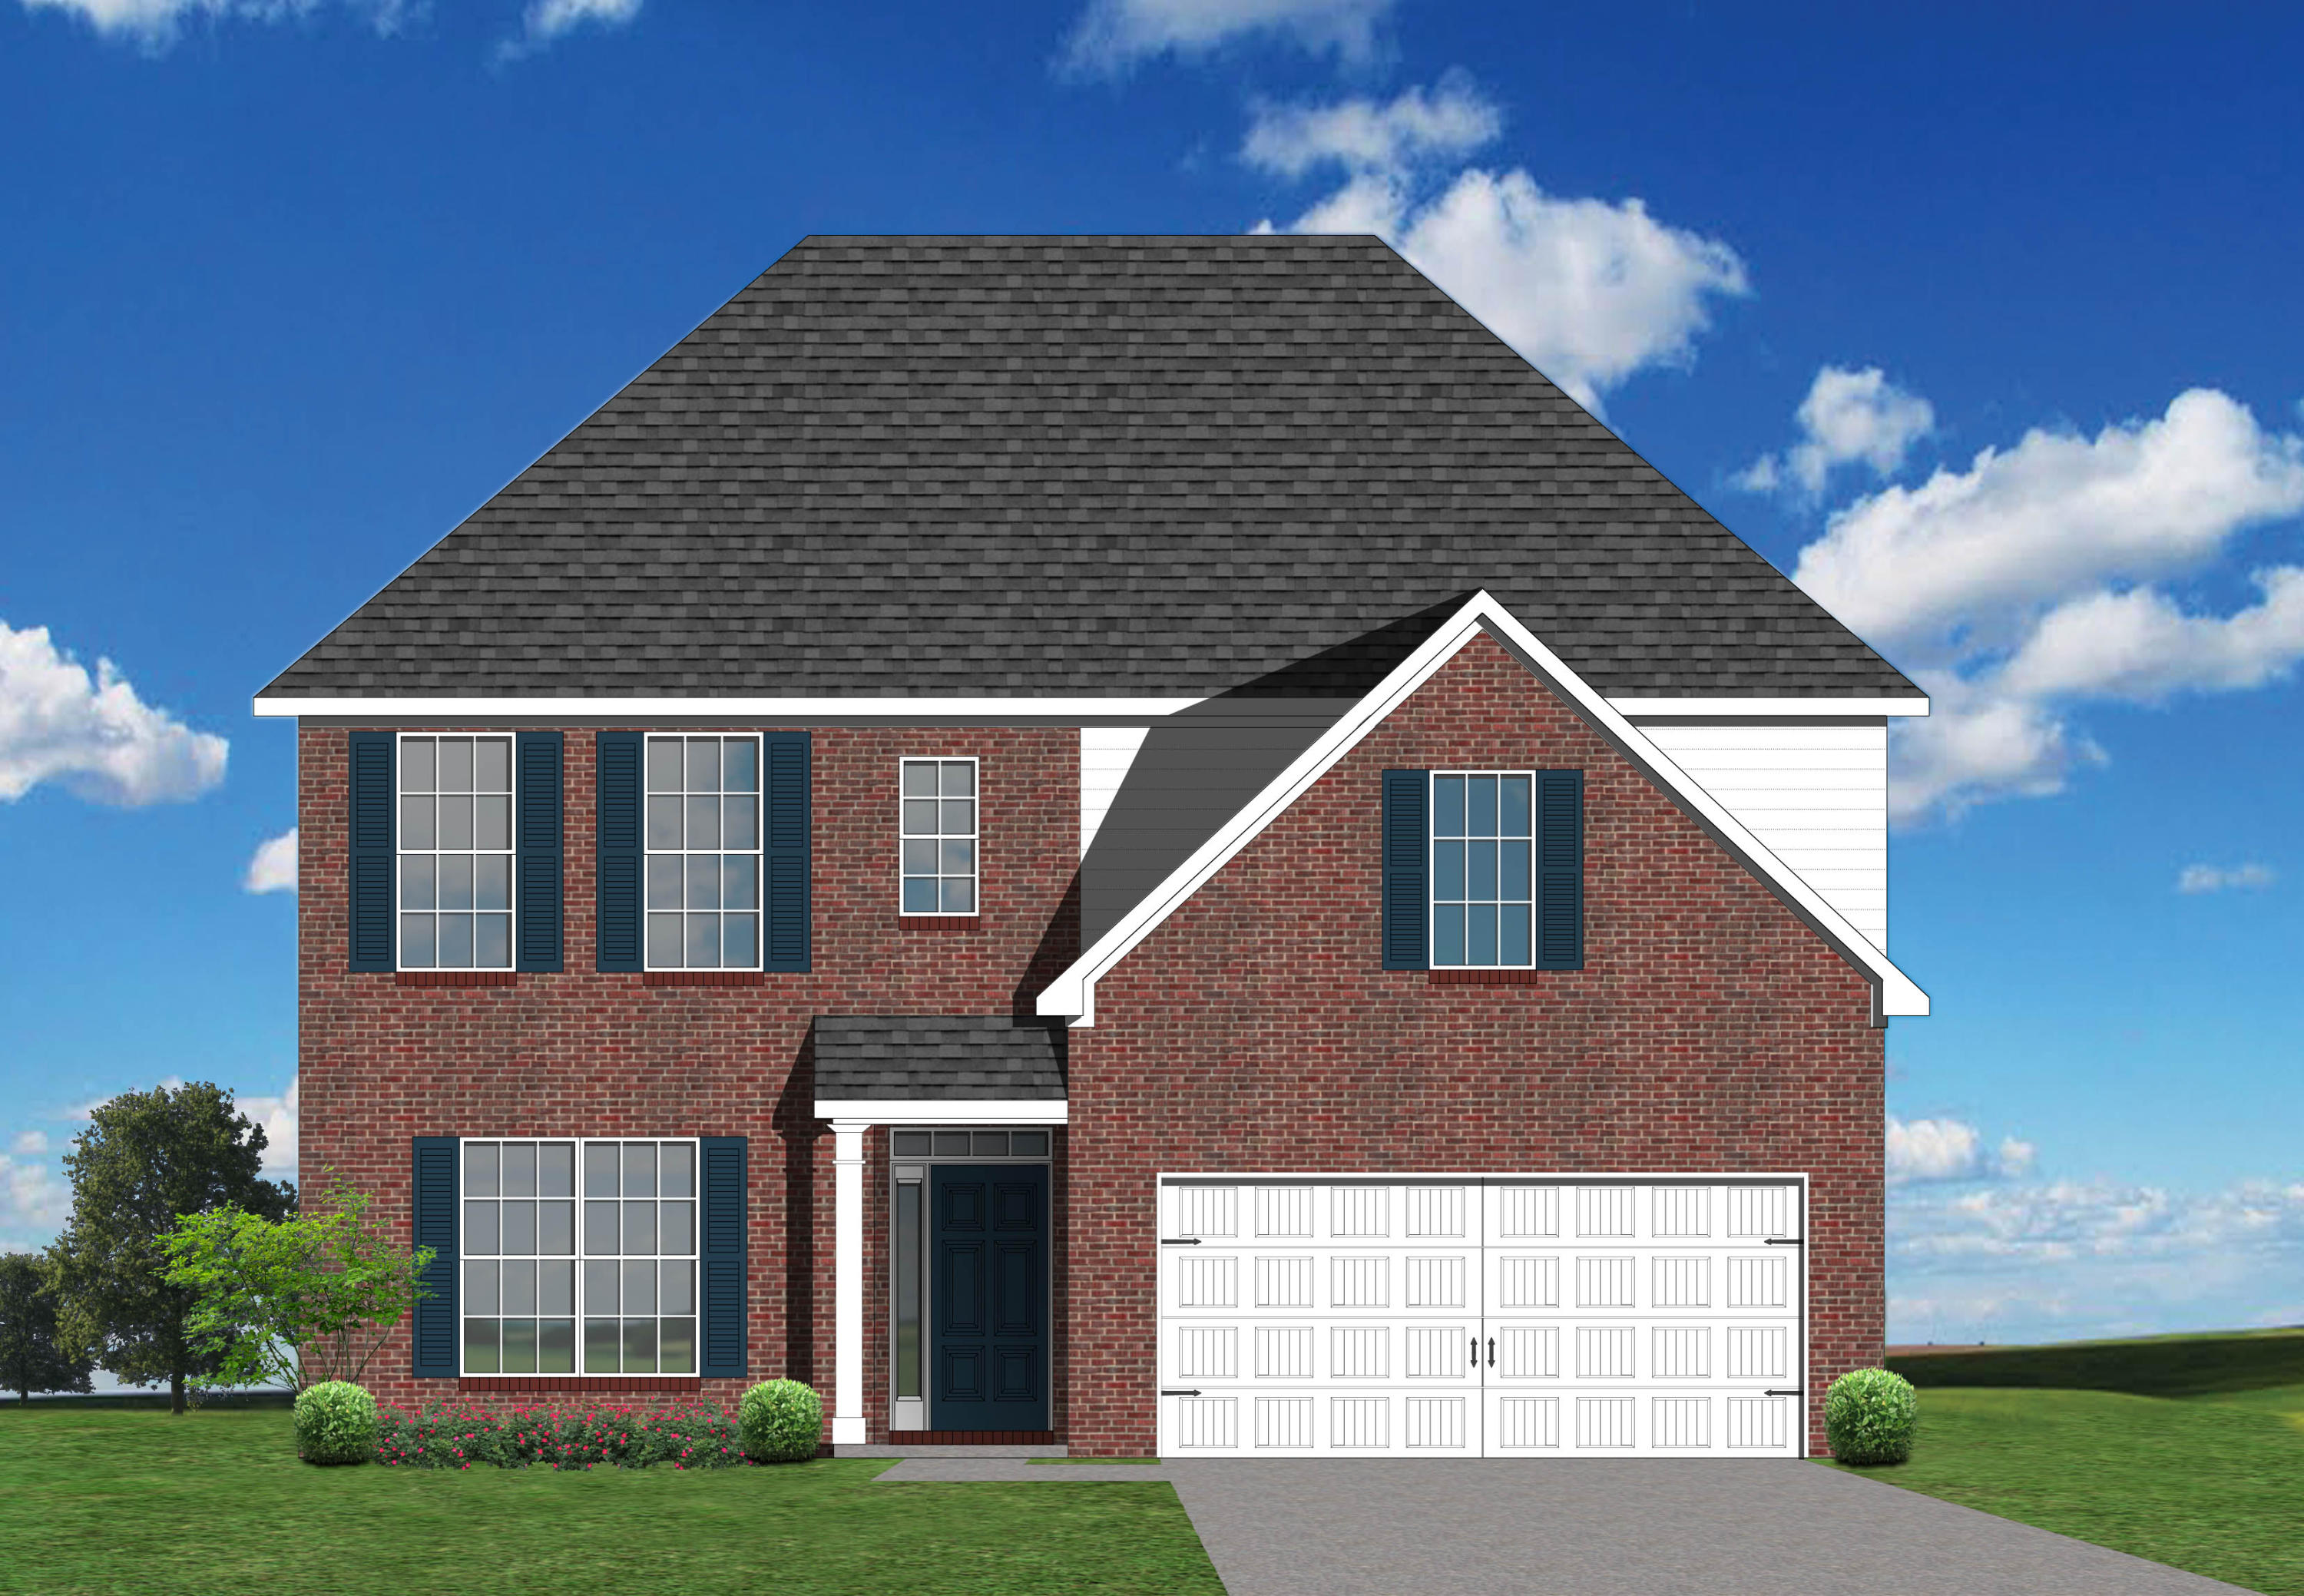 12640 Rocky Slope, Knoxville, Tennessee, United States 37922, 4 Bedrooms Bedrooms, ,3 BathroomsBathrooms,Single Family,For Sale,Rocky Slope,1130376